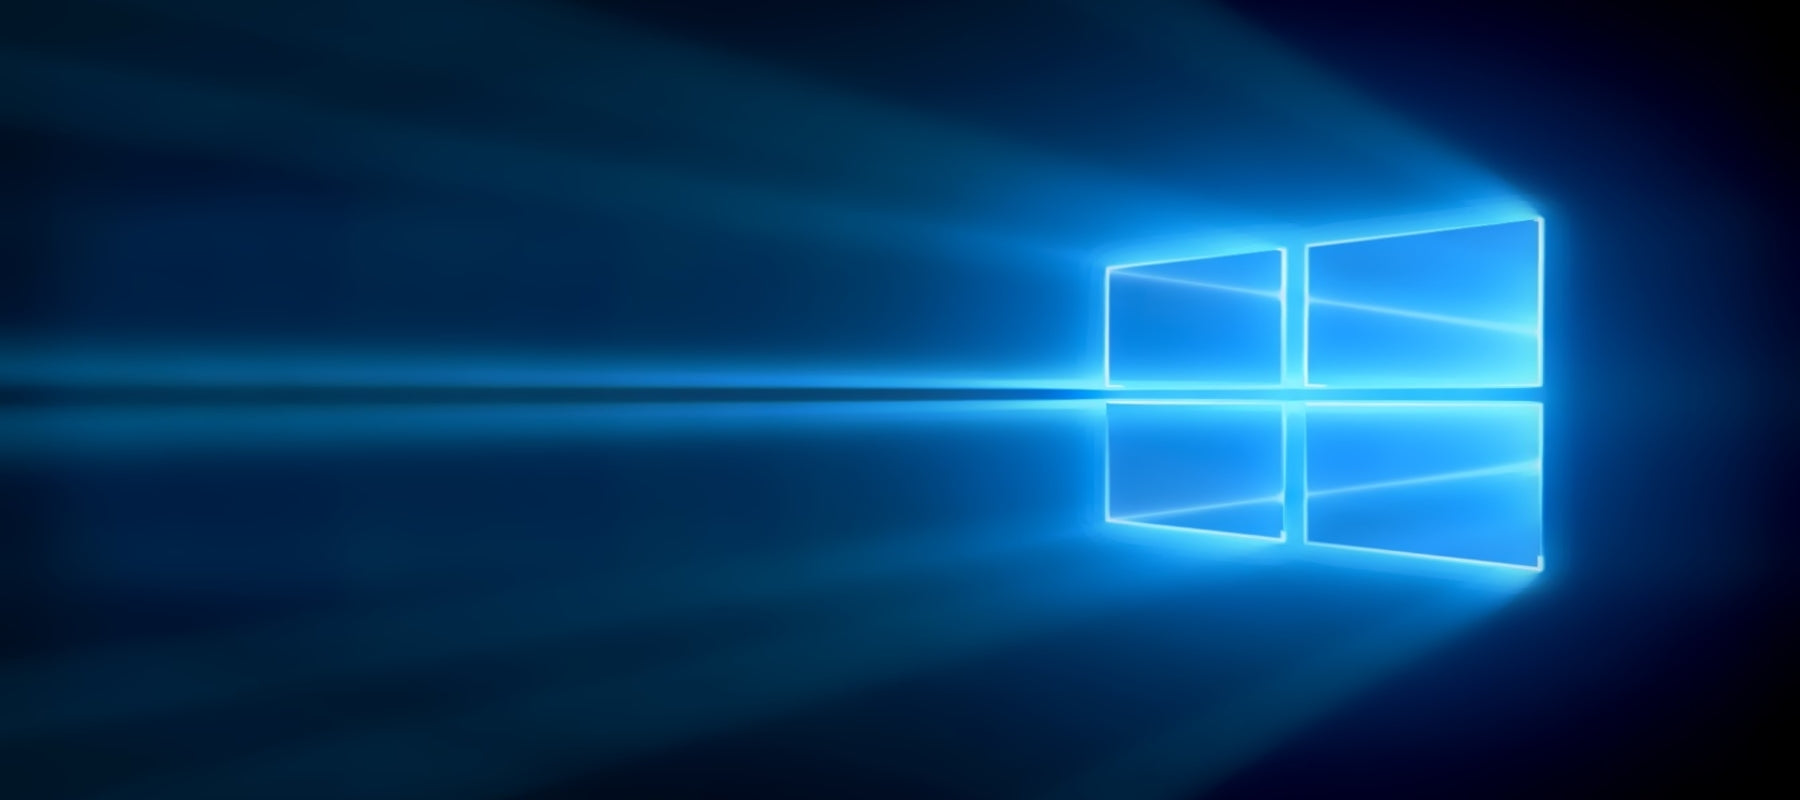 windows 10 1909 update intel core windows pc laptops toronto near me